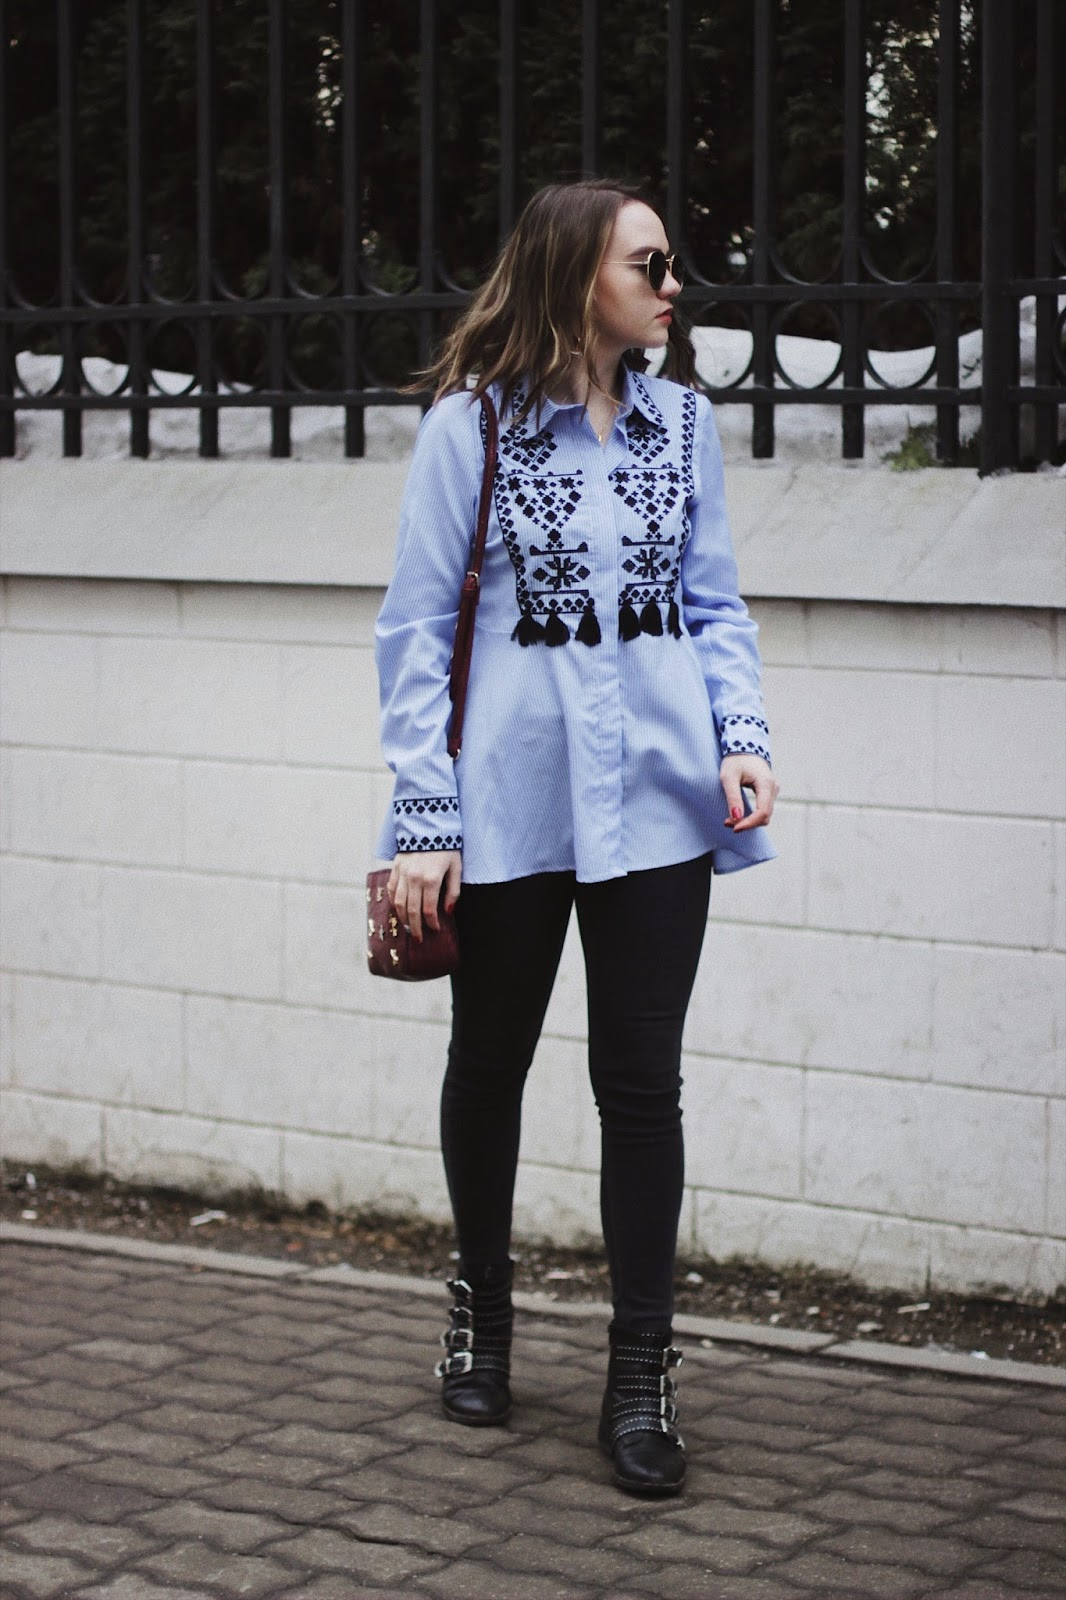 Blue Embroidery Shirt | Fashion Blogger